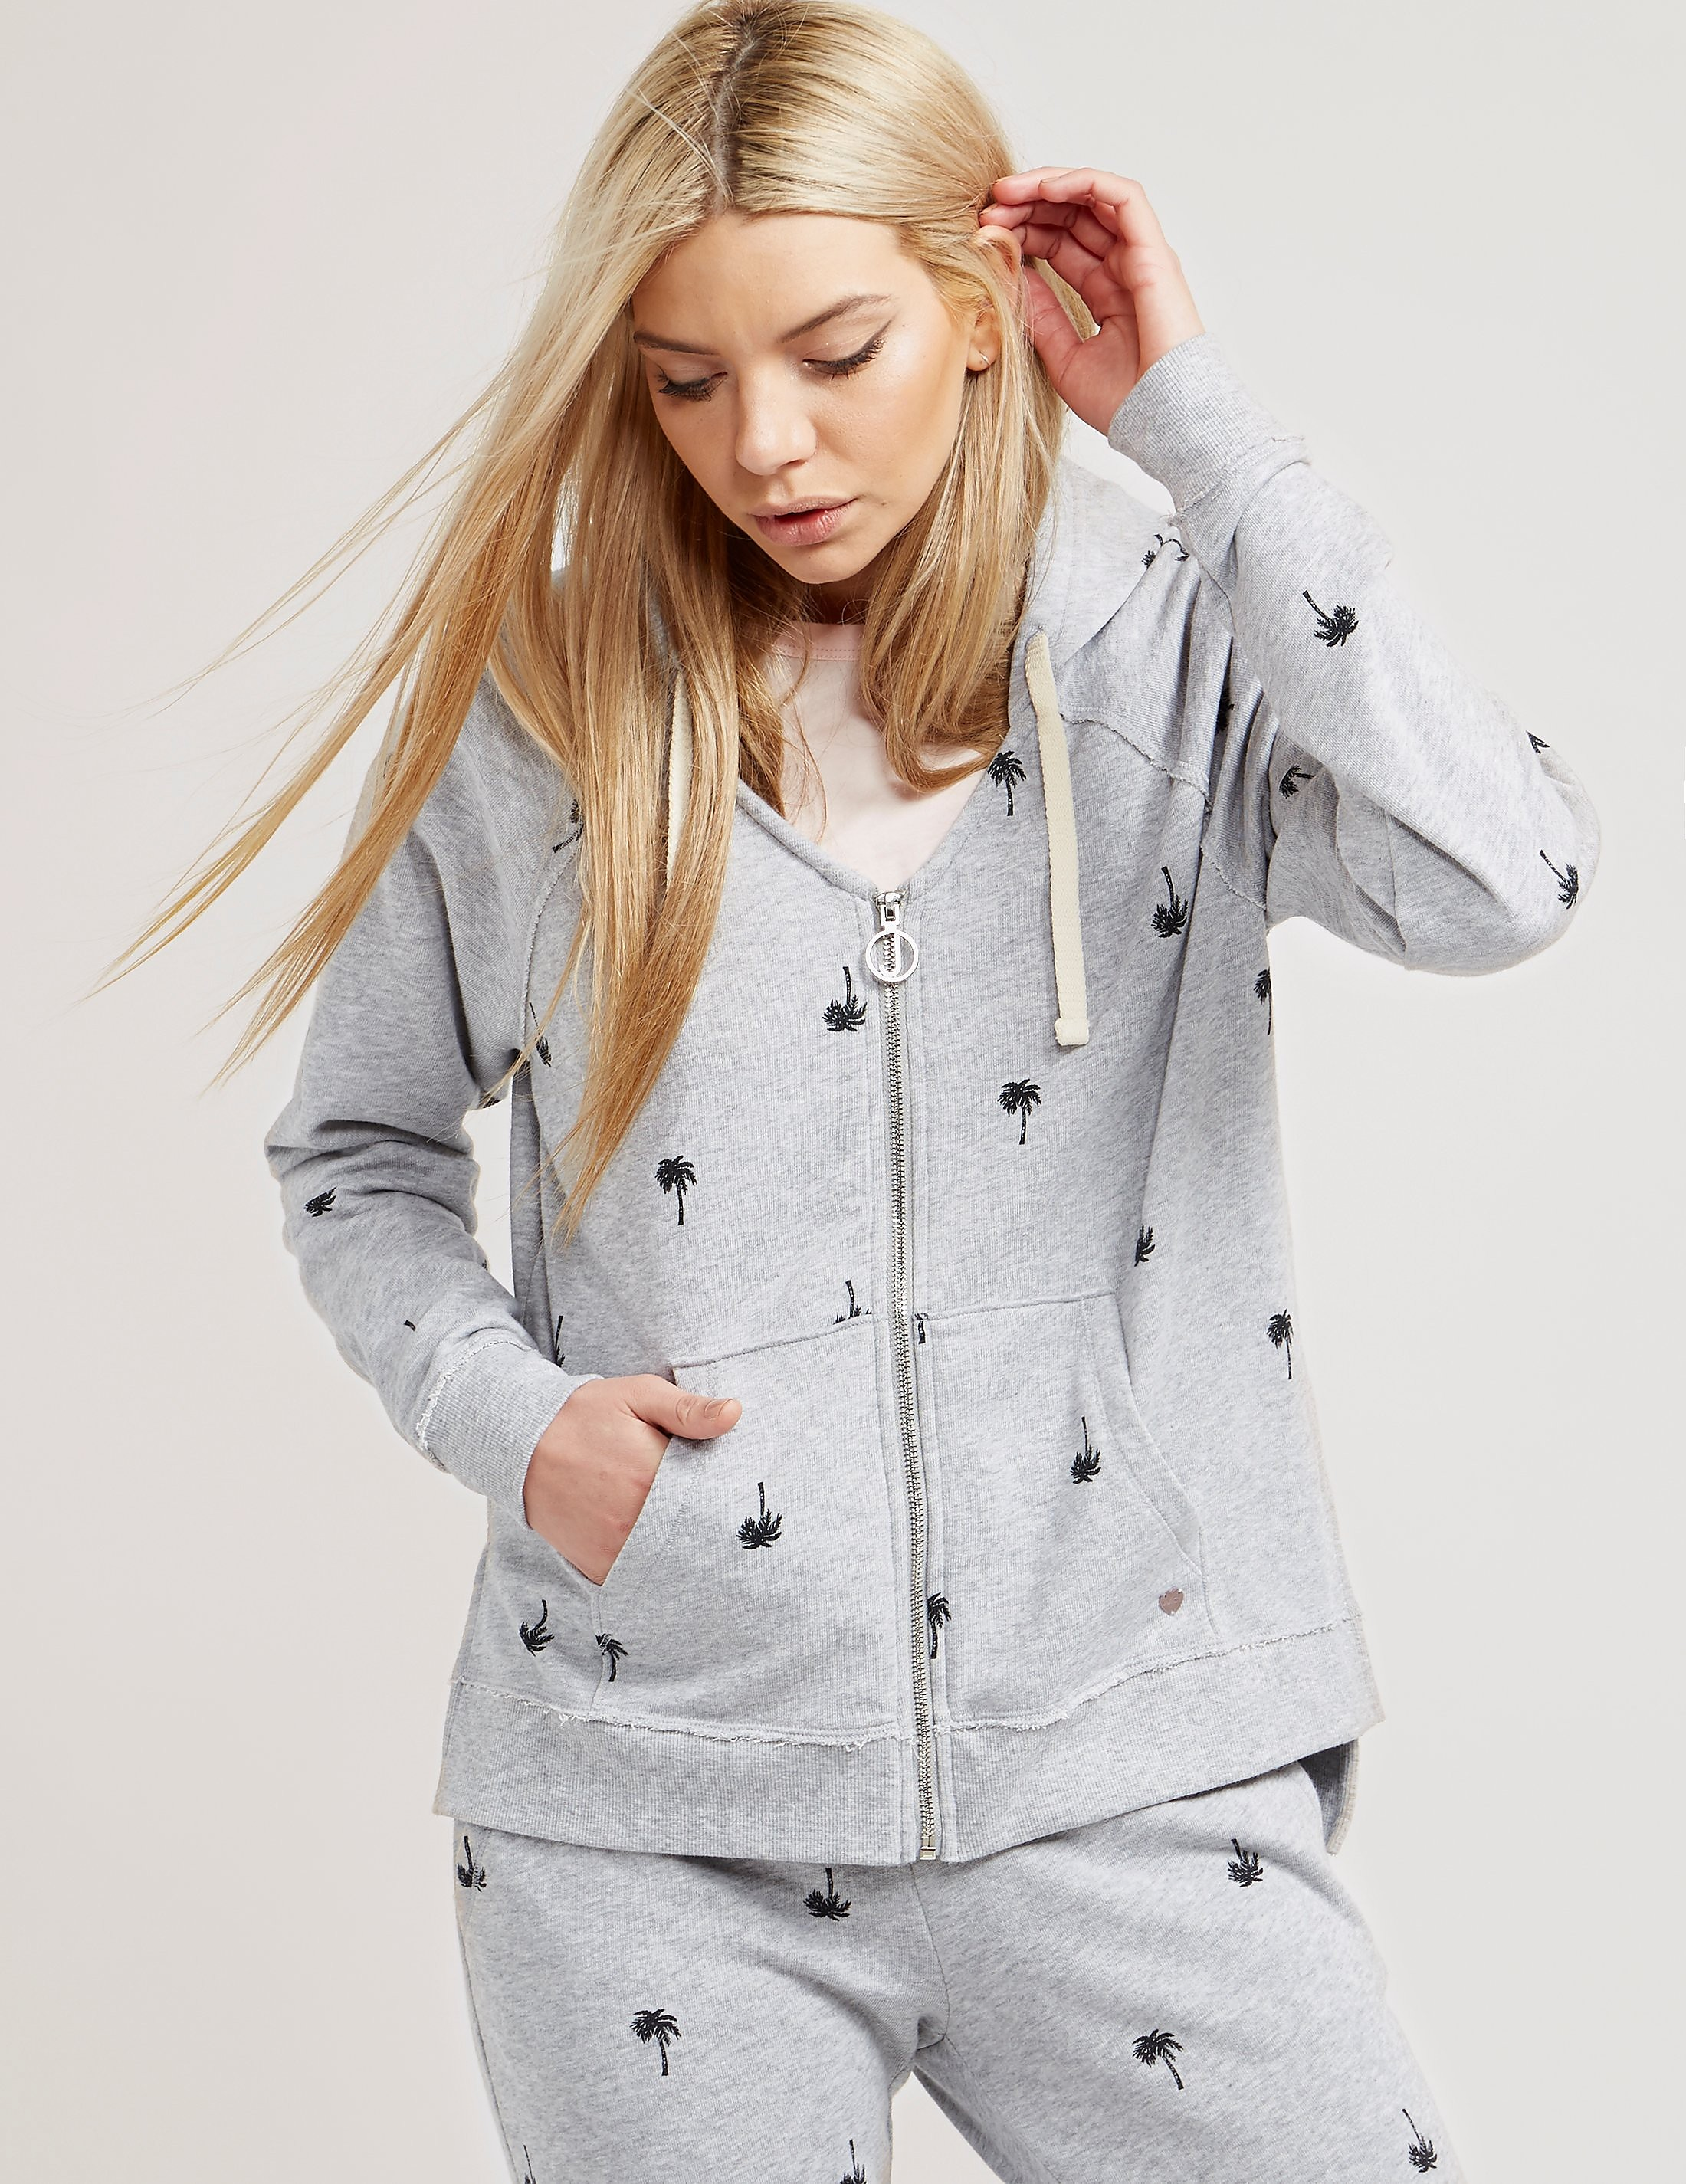 Juicy Couture Palm Tree Hoody